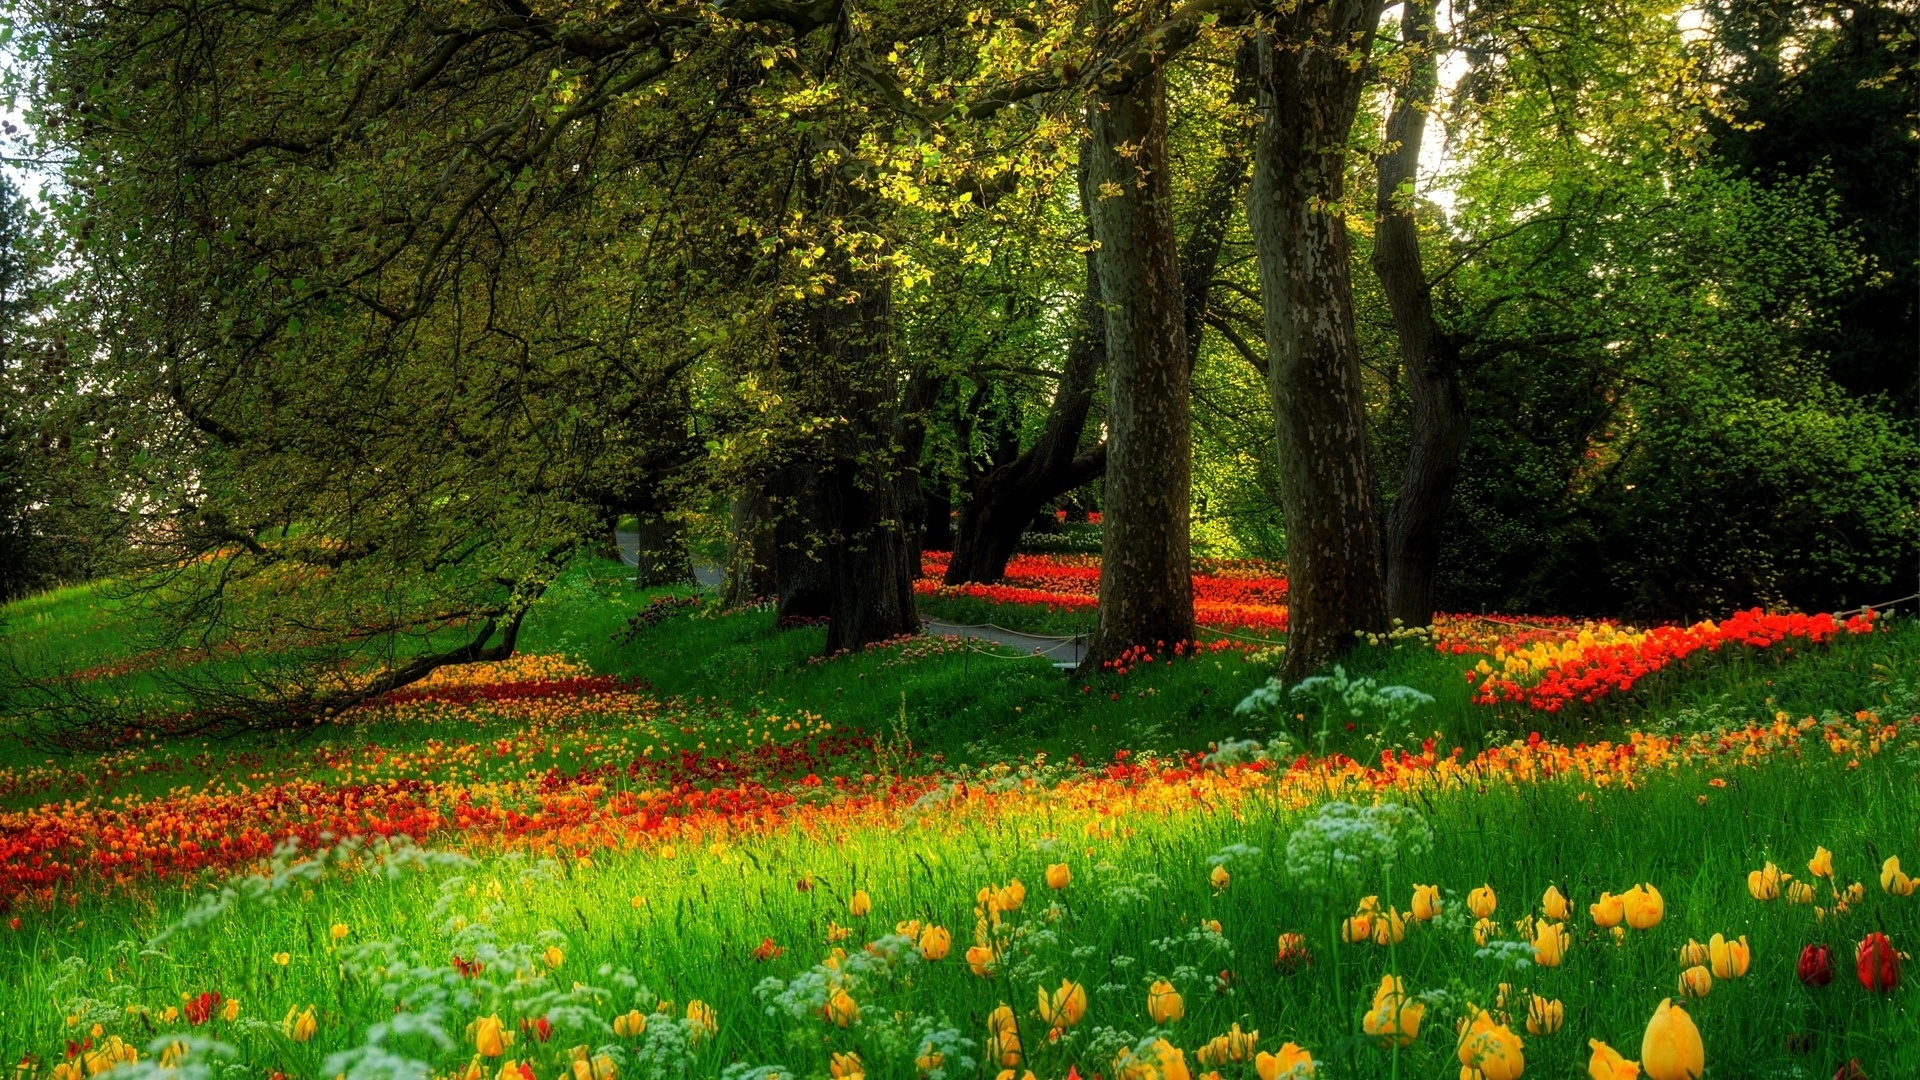 Blooming Flowers in Park Full HD Wallpaper and Background Image ... for Flower Park Background  568zmd